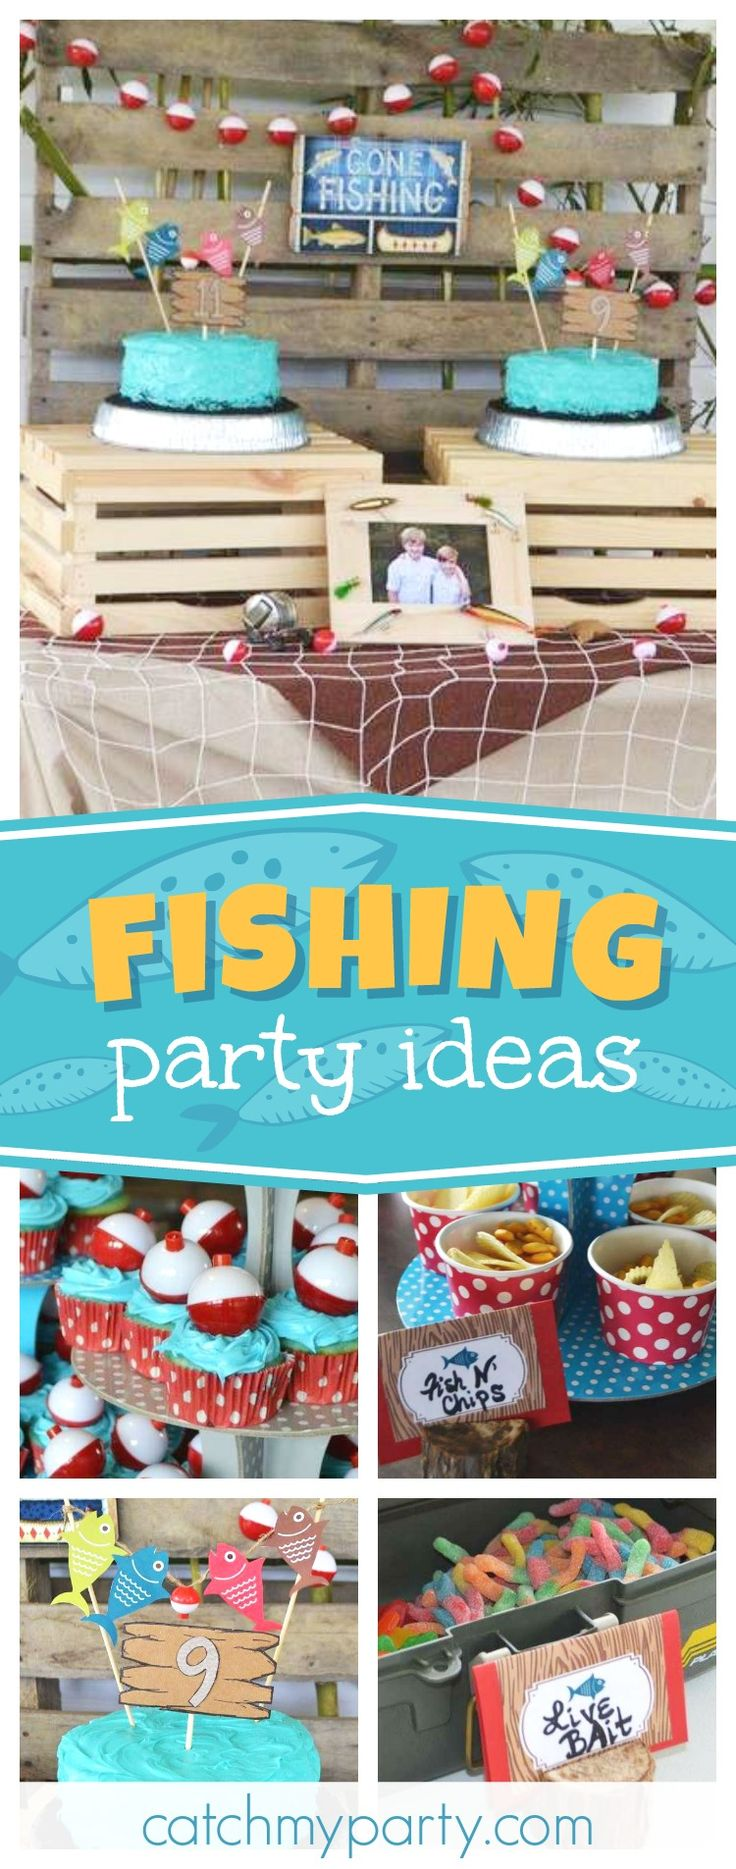 Check out this awesome twins fishing birthday party! The cakes are so much fun!! See more party ideas and share yours at CatchMyParty.com #fishing #twins